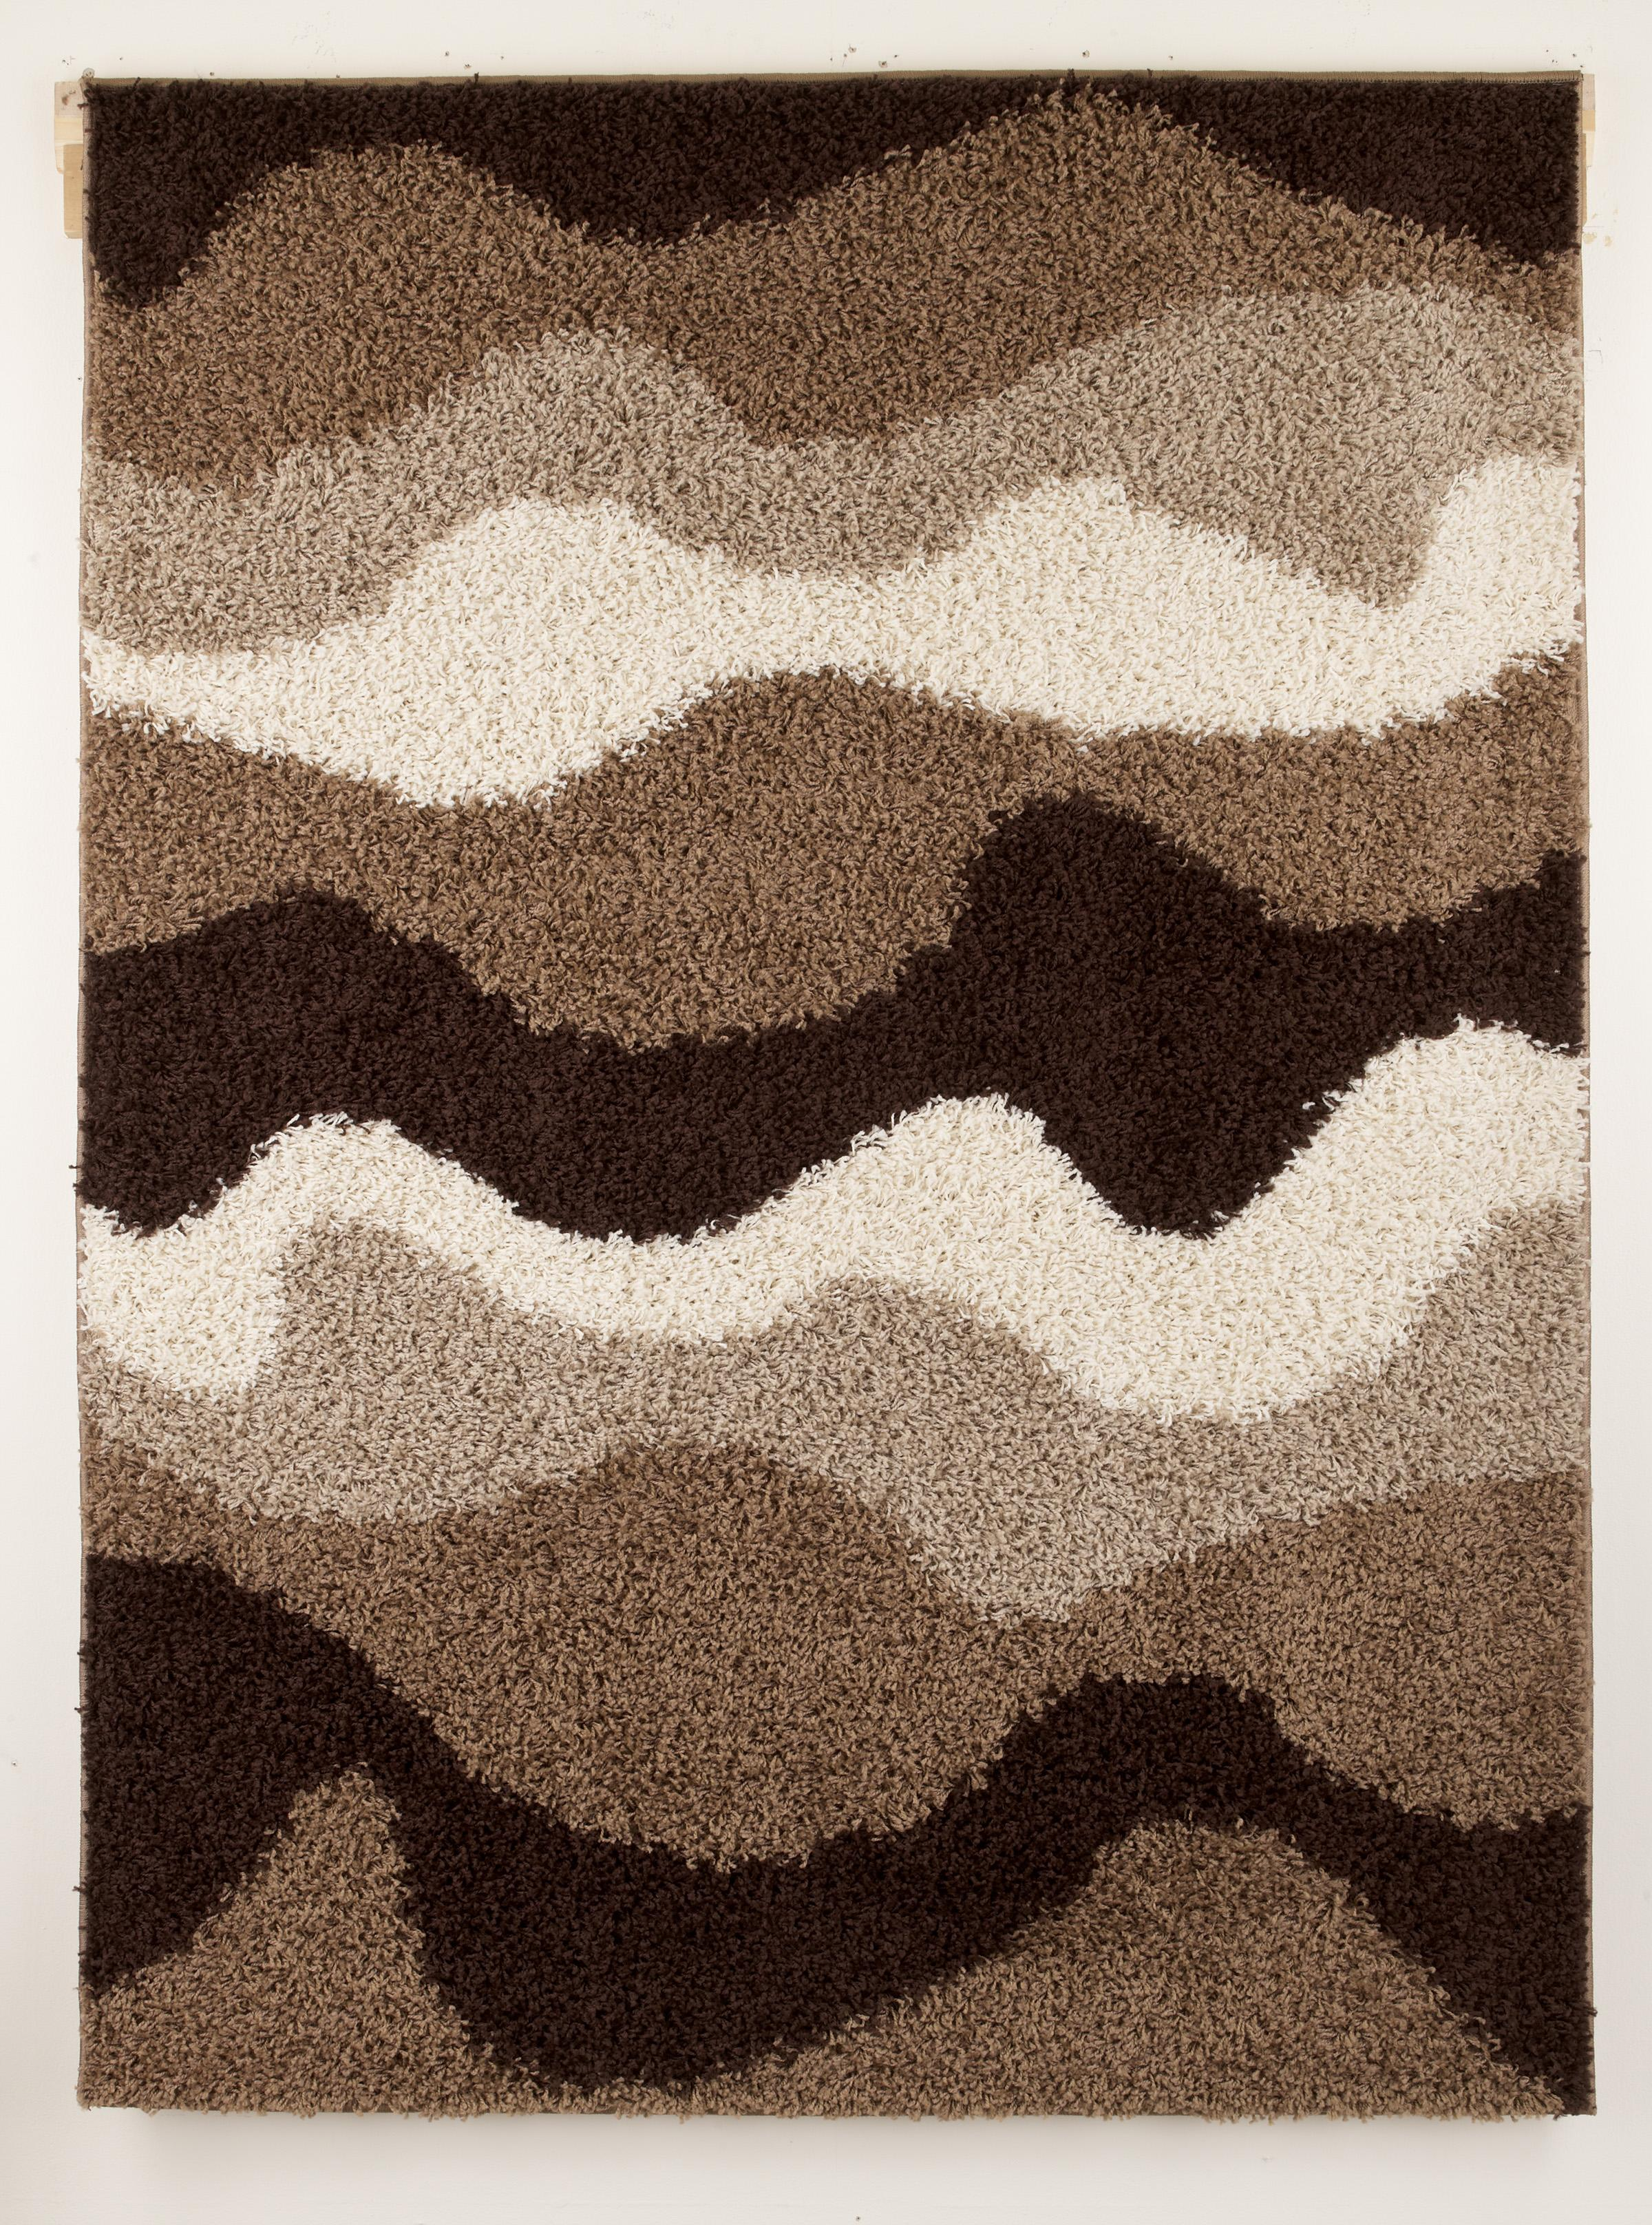 Signature Design by Ashley Contemporary Area Rugs Kipri - Java Medium Rug - Item Number: R339002